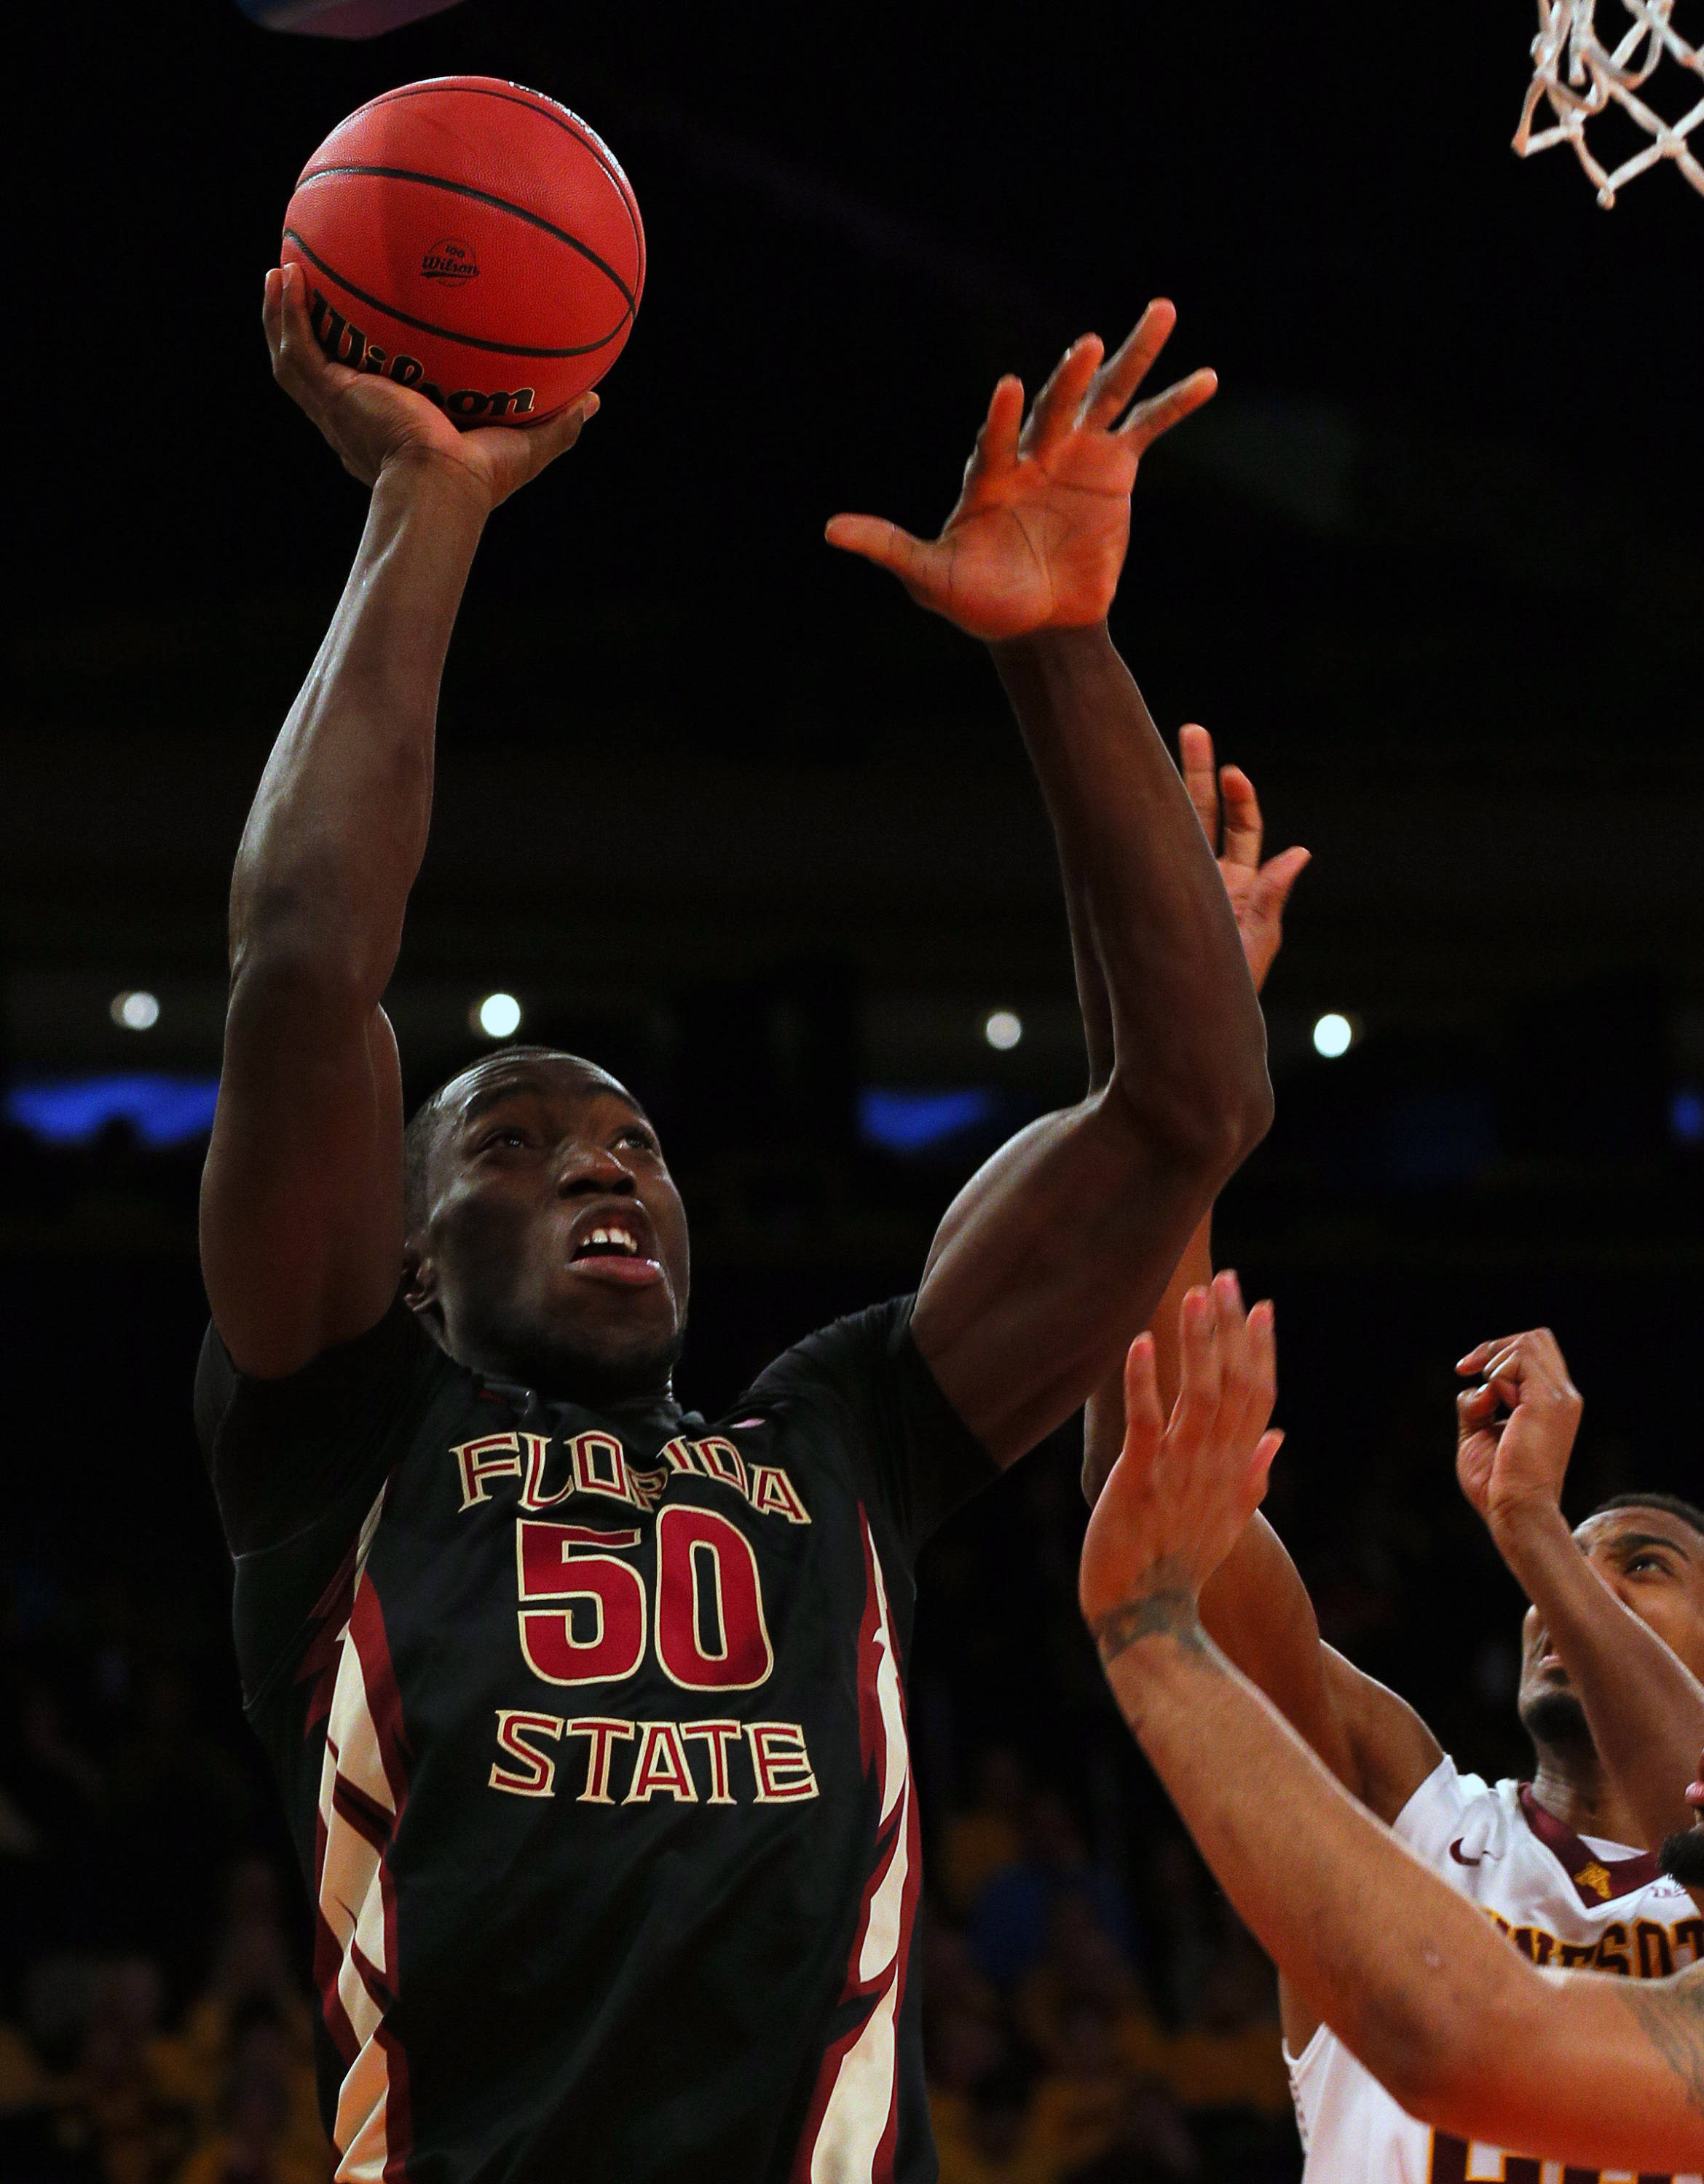 Apr 1, 2014; New York, NY, USA; Florida State Seminoles center Michael Ojo (50) shoots against the Minnesota Golden Gophers during the first half at Madison Square Garden. Mandatory Credit: Adam Hunger-USA TODAY Sports